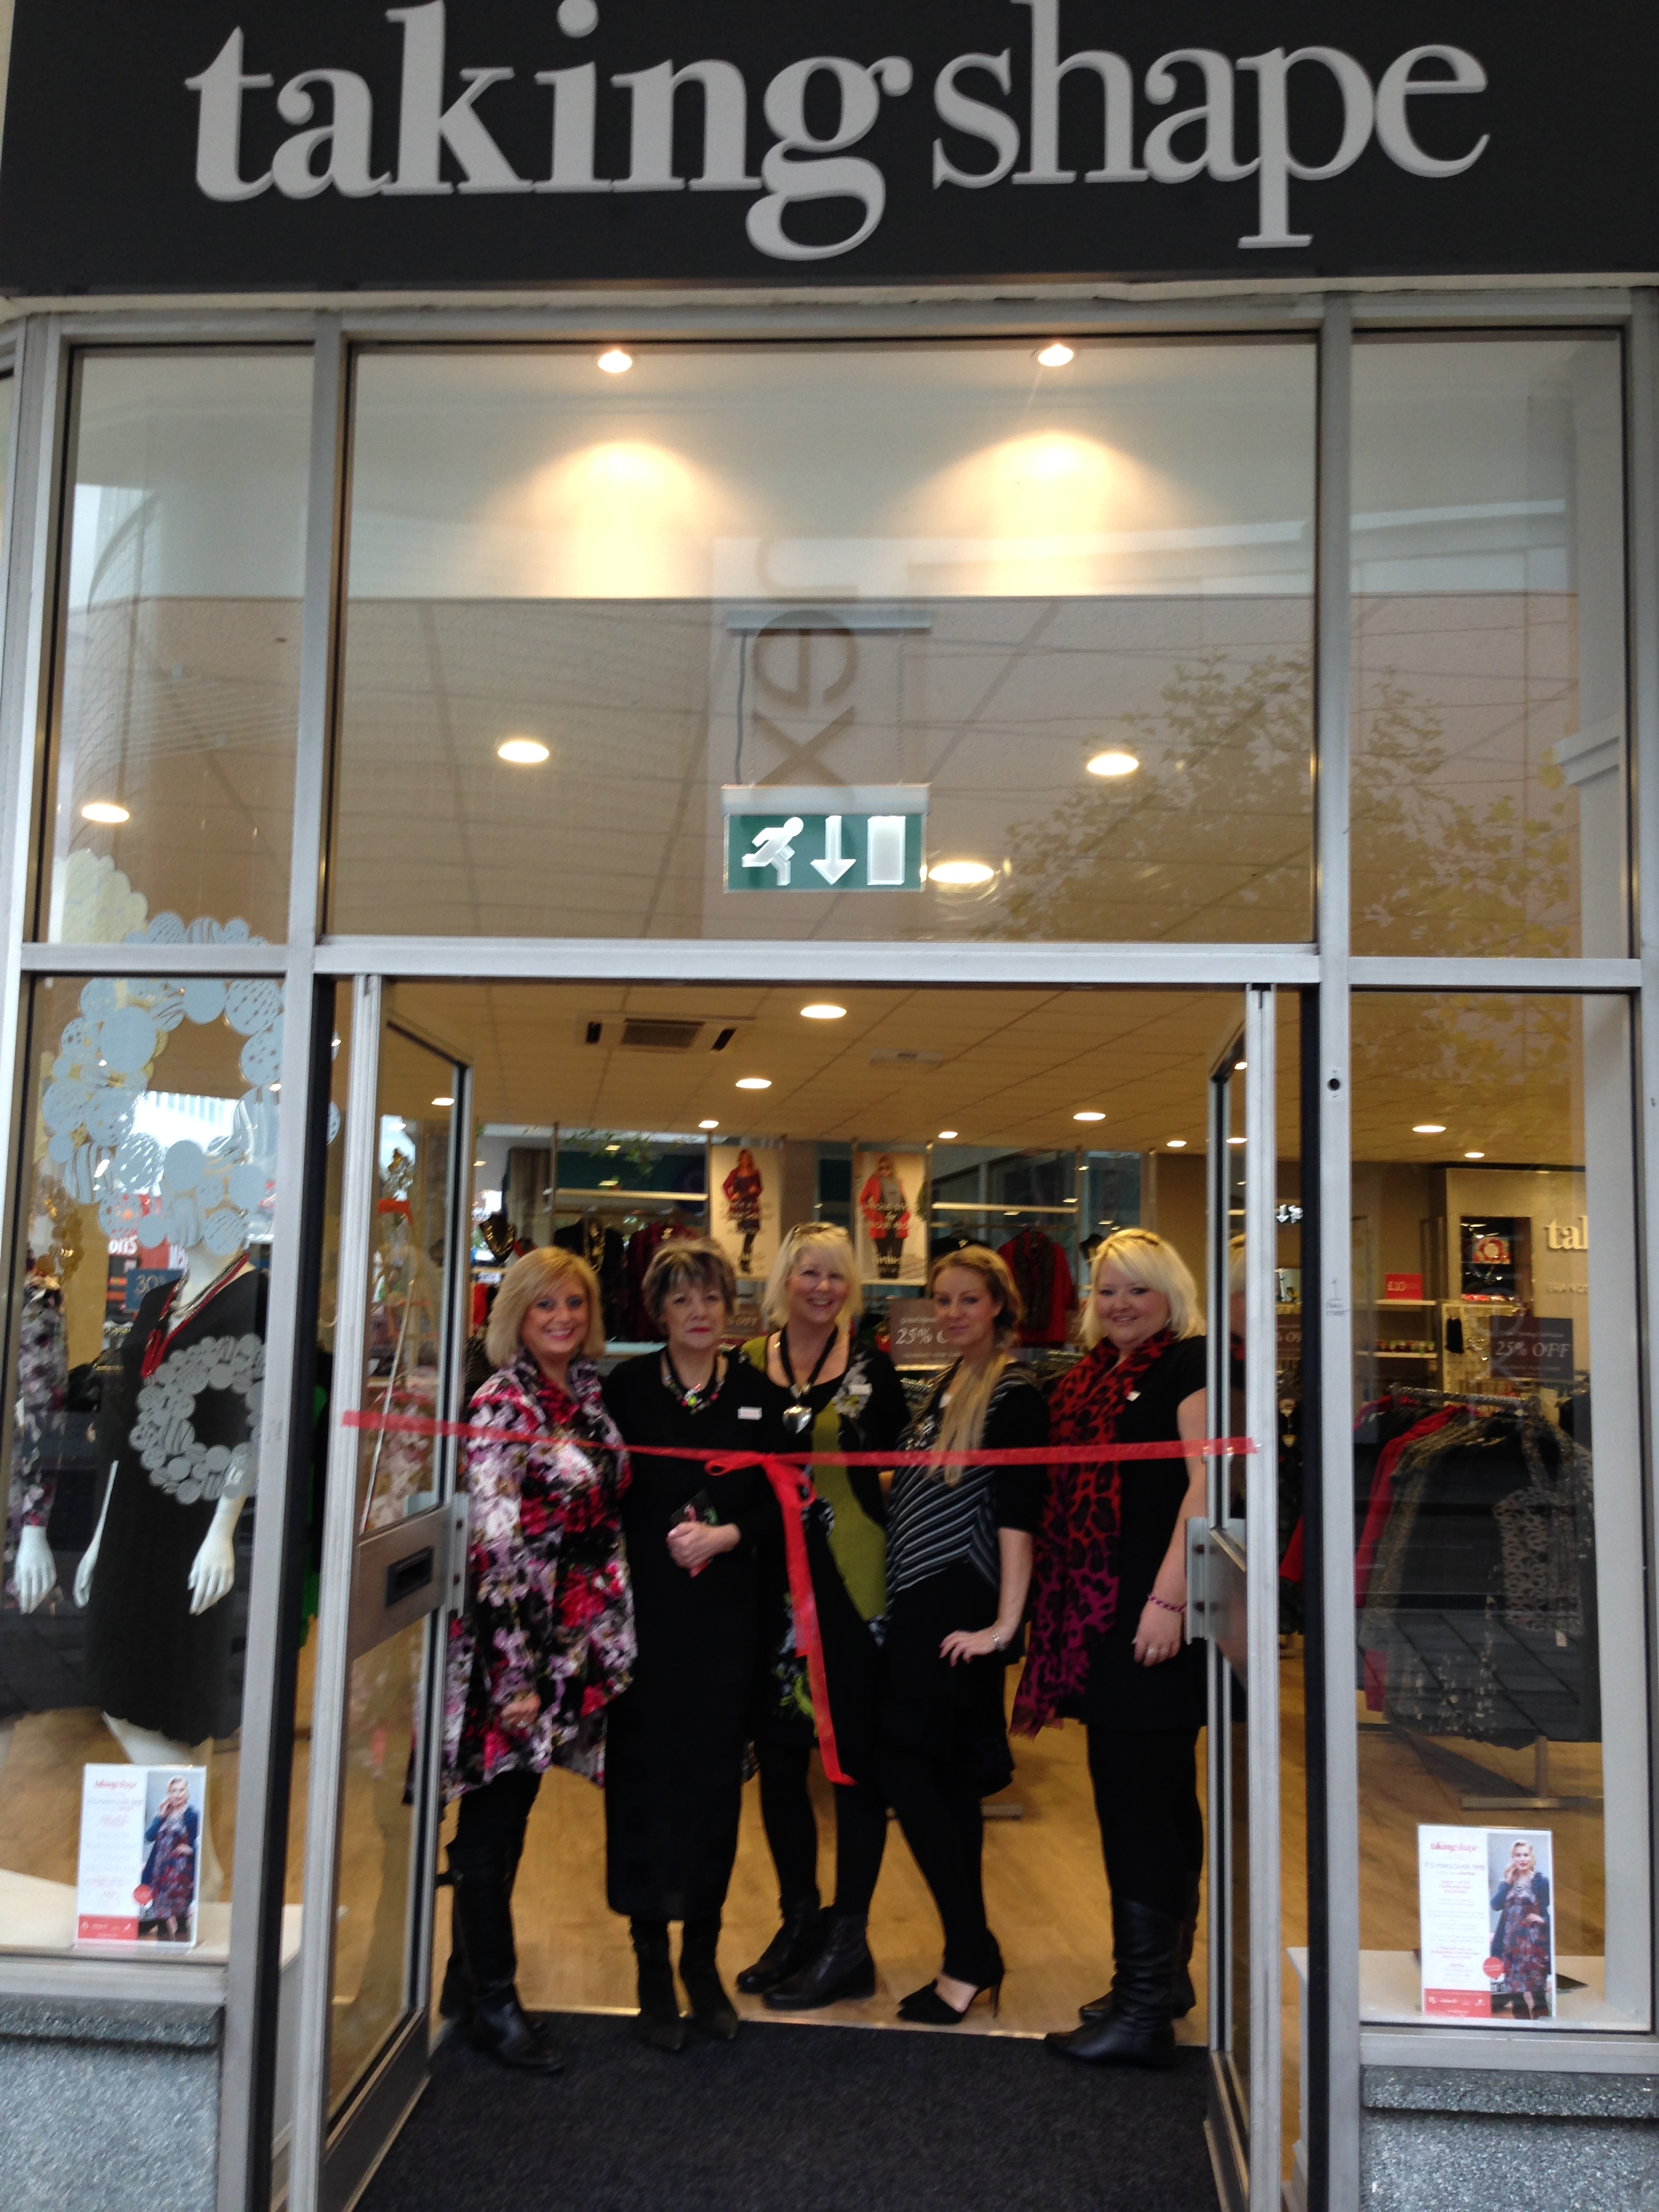 Taking Shape store opens in Exeter | The Exeter Daily